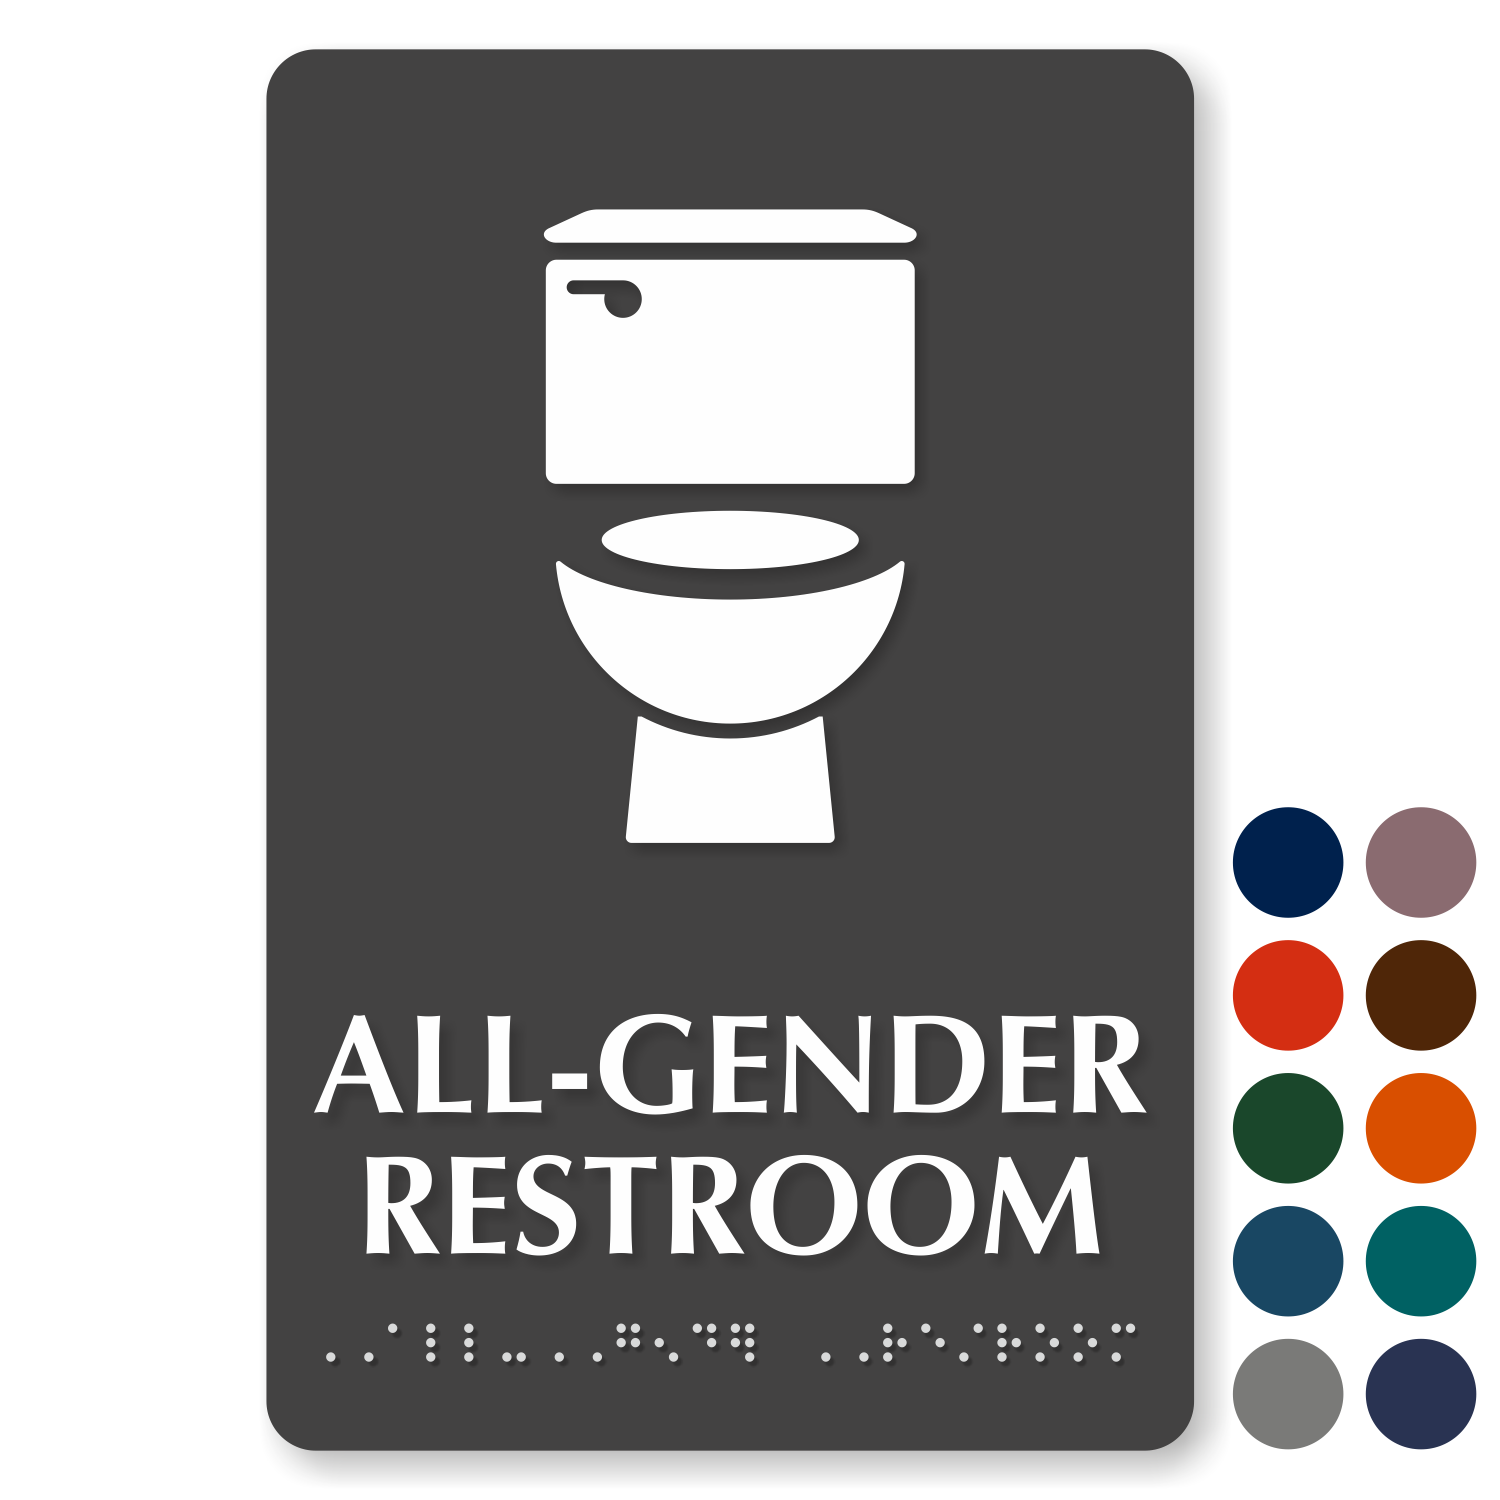 AllGender Restroom Signs Gender Neutral Restroom Signs Simple Unisex Bathroom Signs